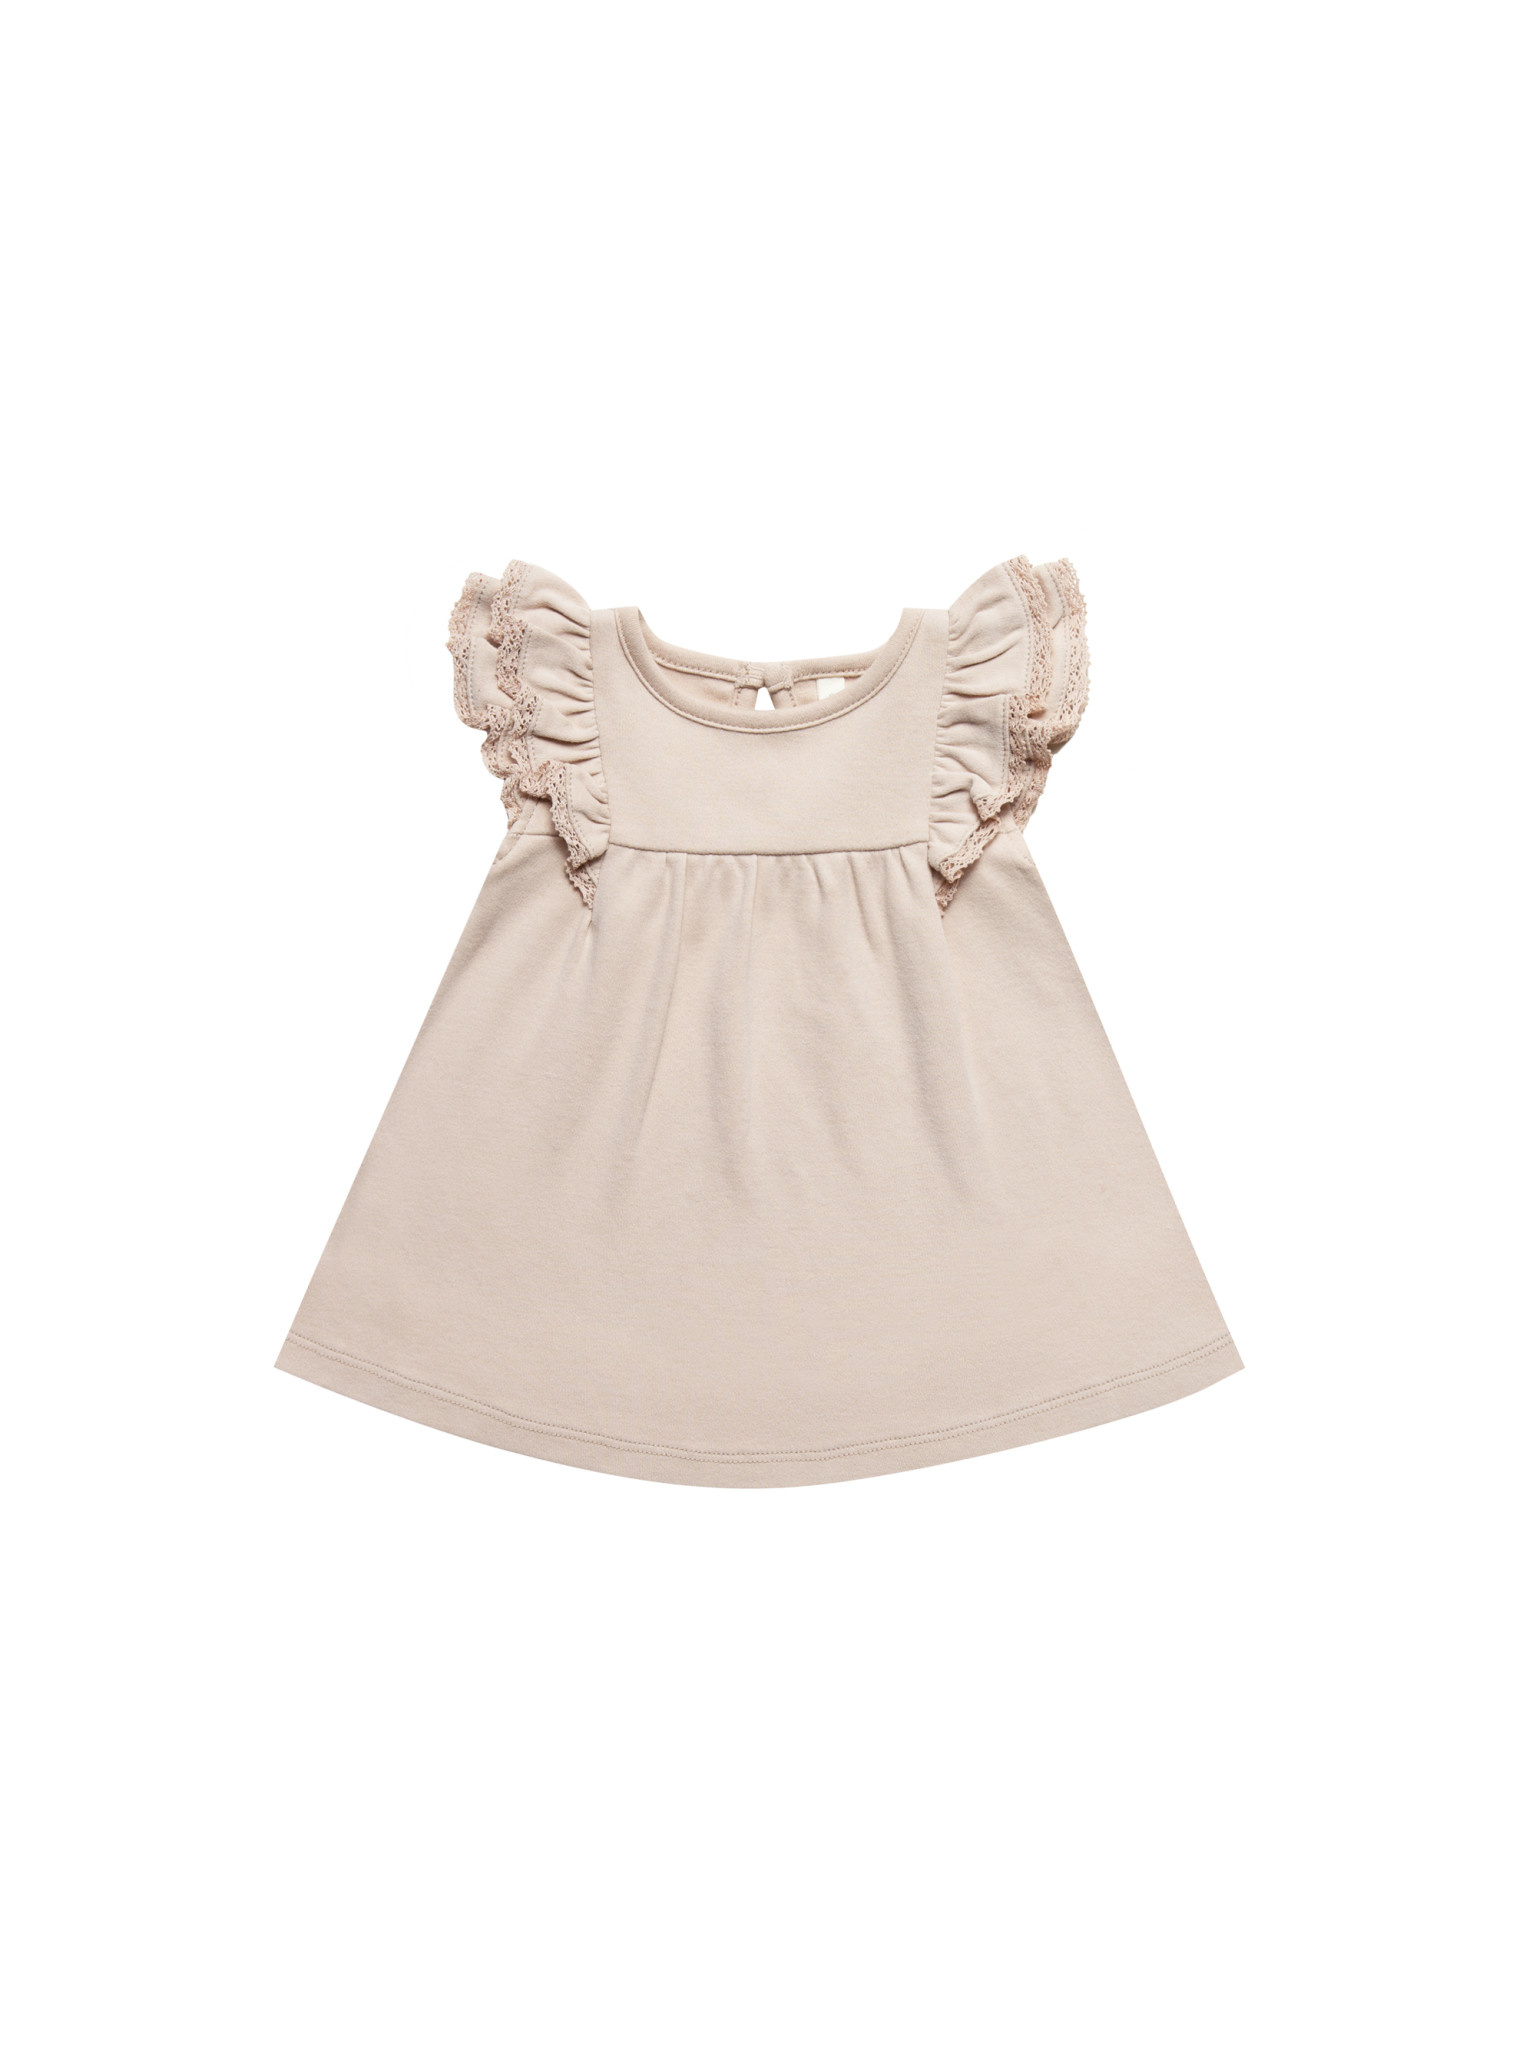 QUINCY MAE Organic Flutter Dress